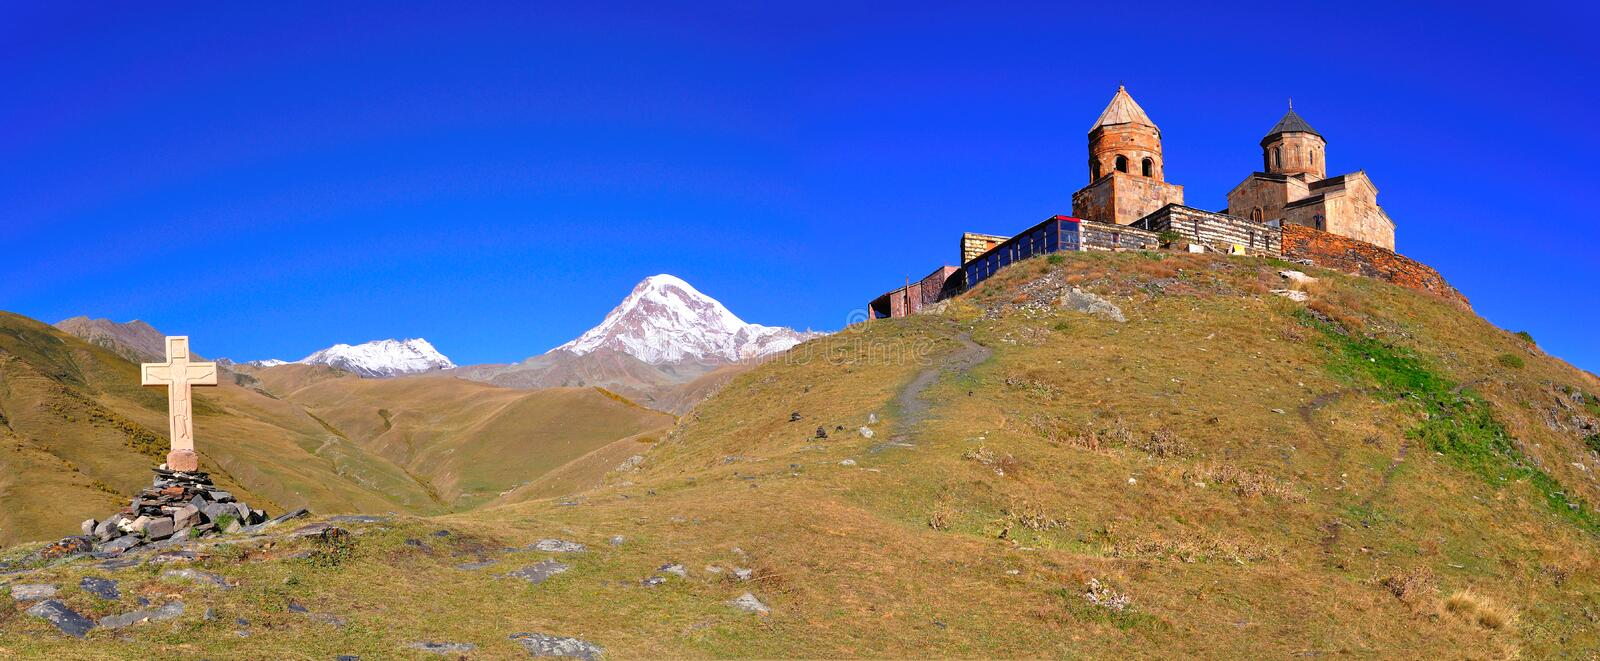 Holy Trinity Church Panorama, Kazbegi, Georgia stock image